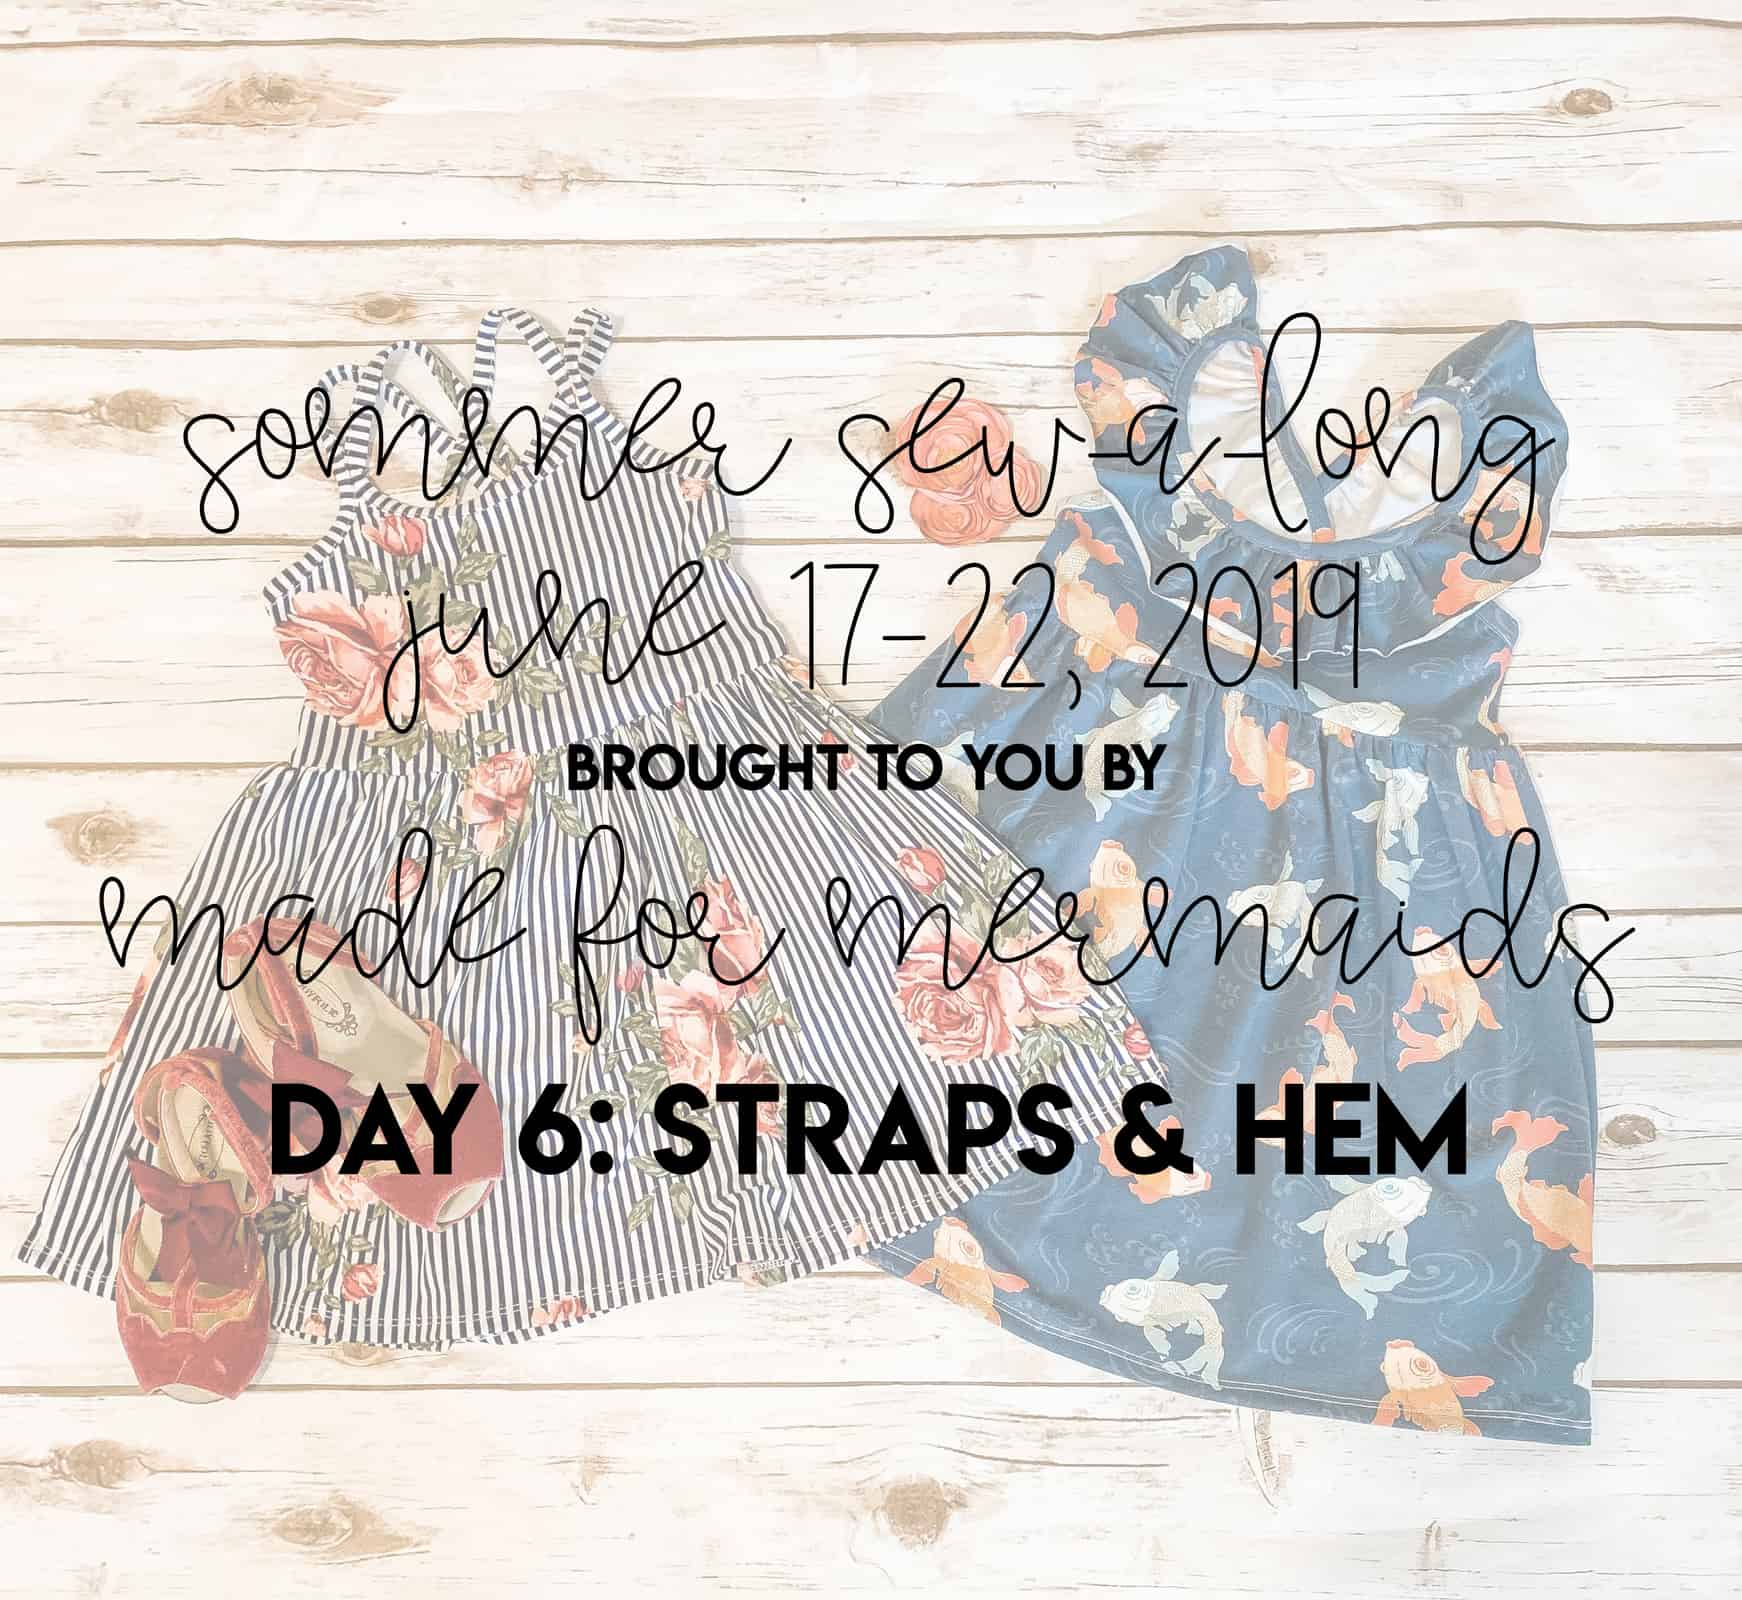 Sommer Sew-a-long: Day 6